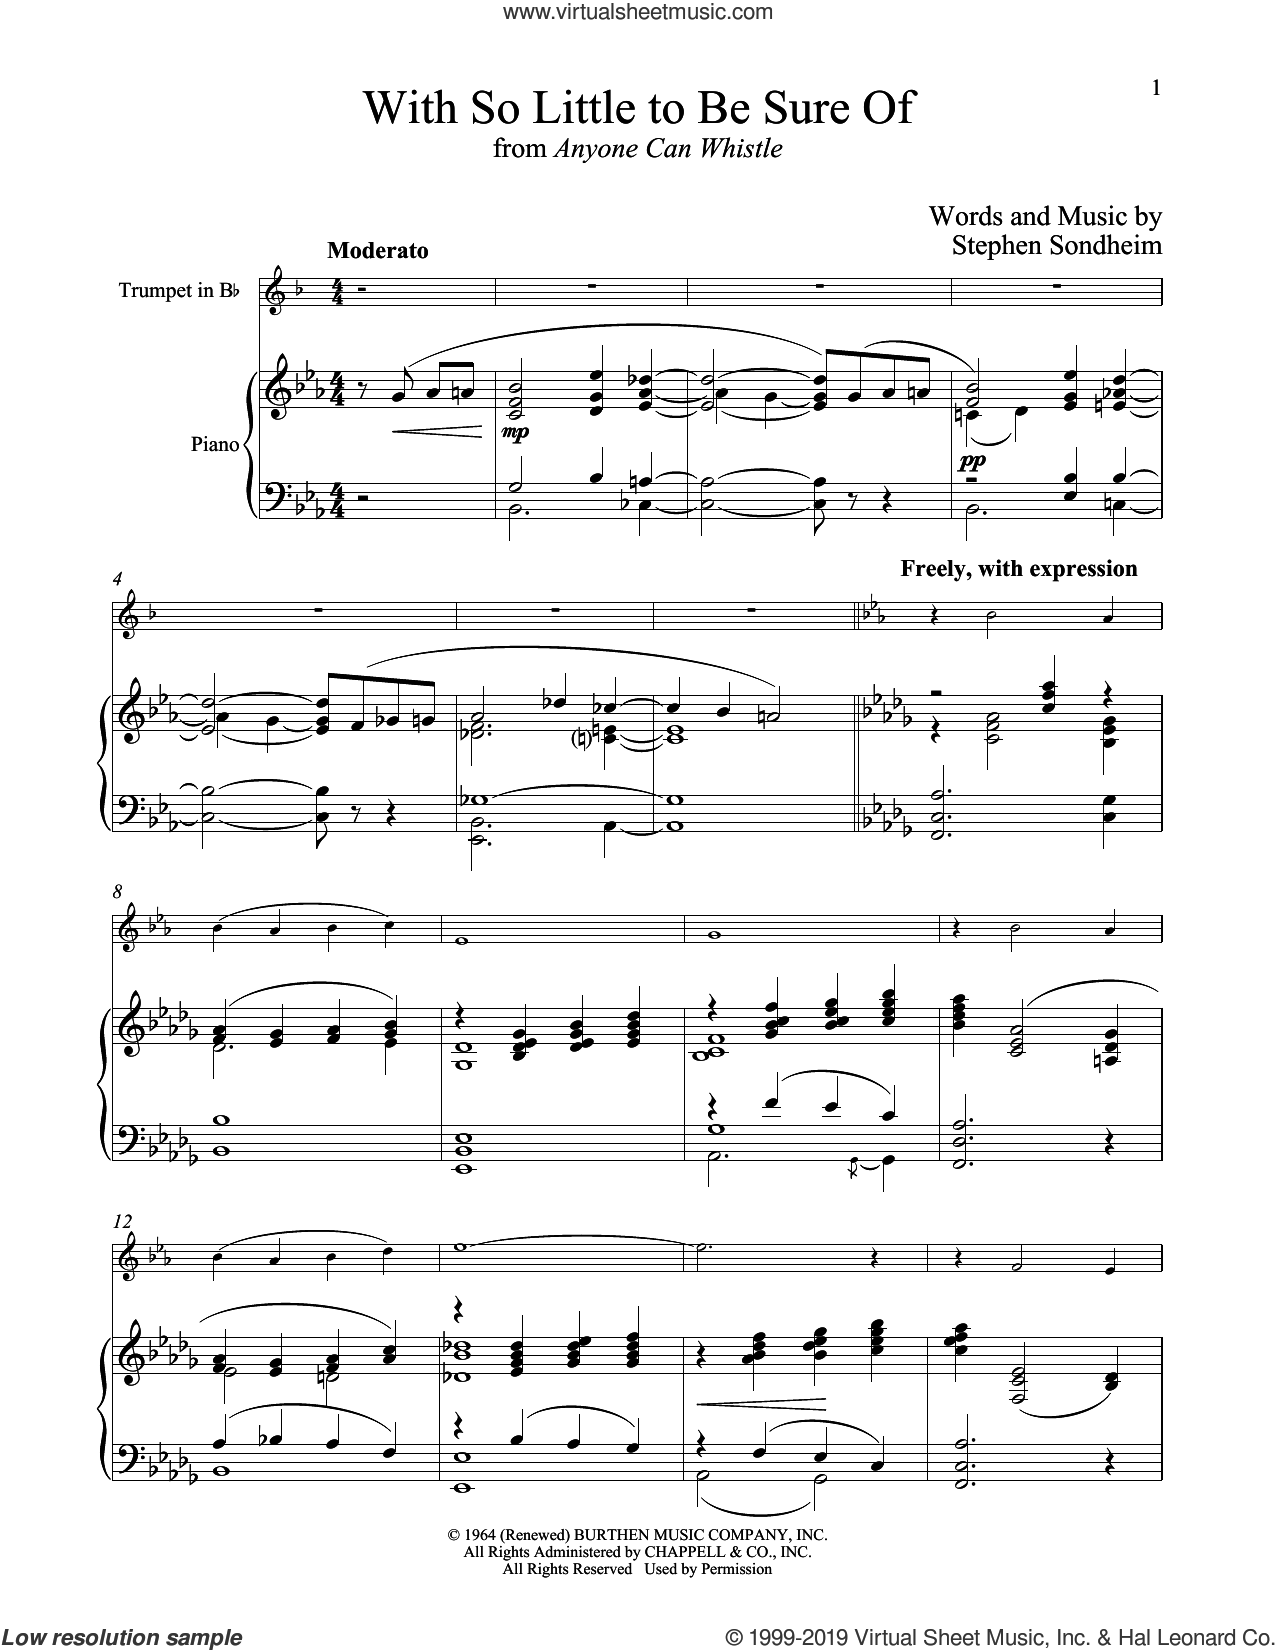 With So Little To Be Sure Of (from Anyone Can Whistle) sheet music for trumpet and piano by Stephen Sondheim, intermediate skill level